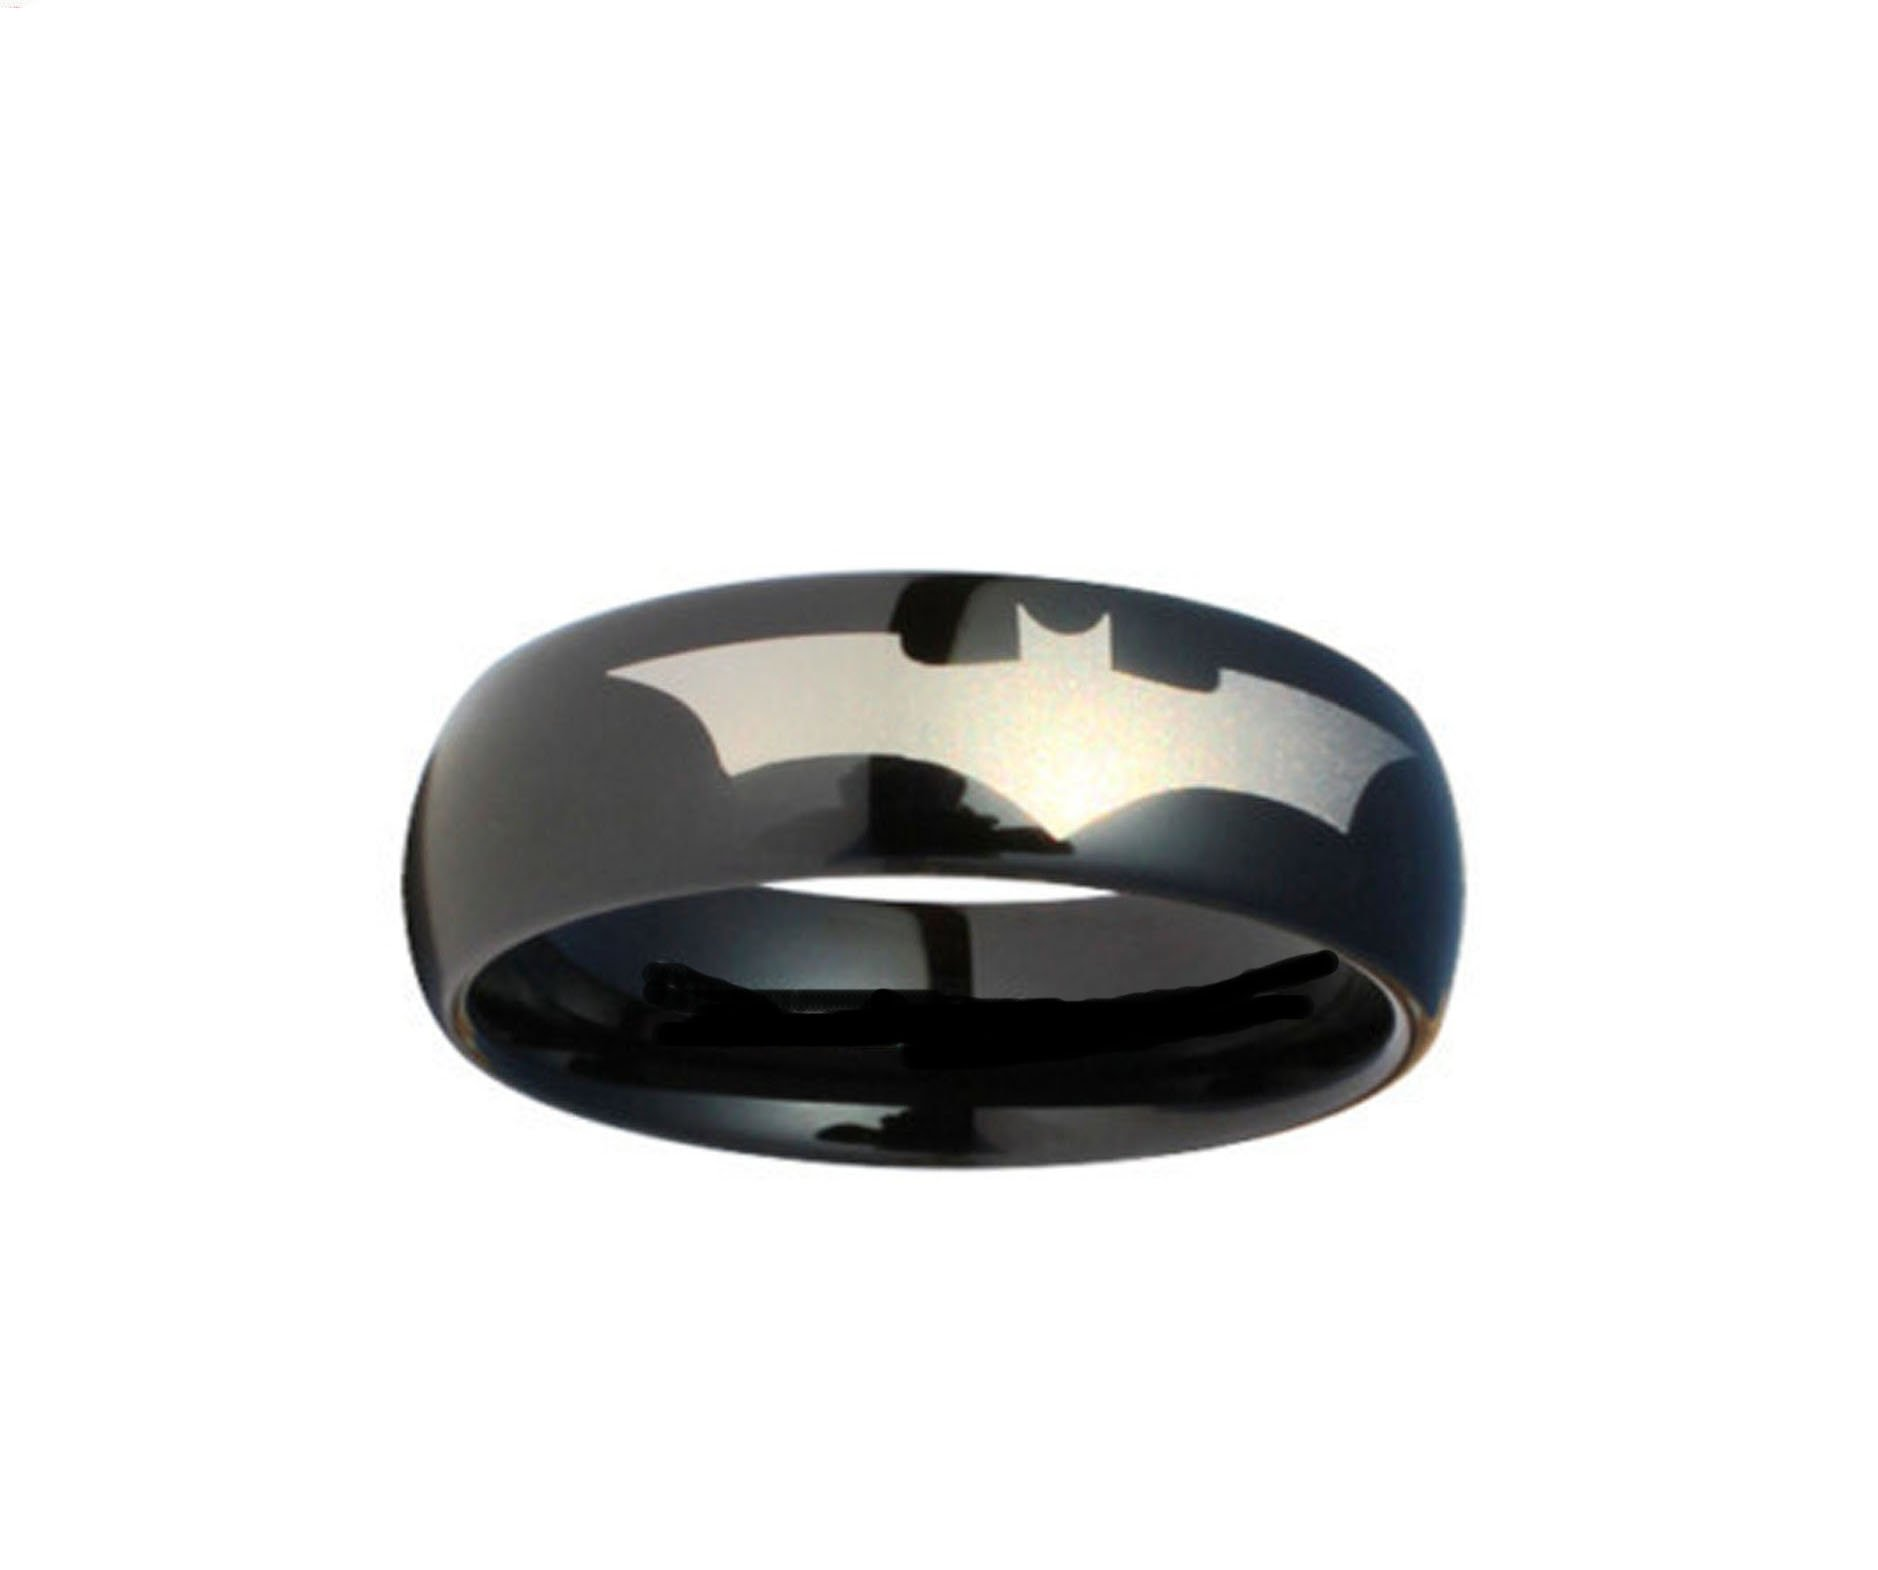 Blue Palm Jewelry Batman Print on a Black Stainless Steel DC Width 6 mm Band Ring R380 Size 5-13